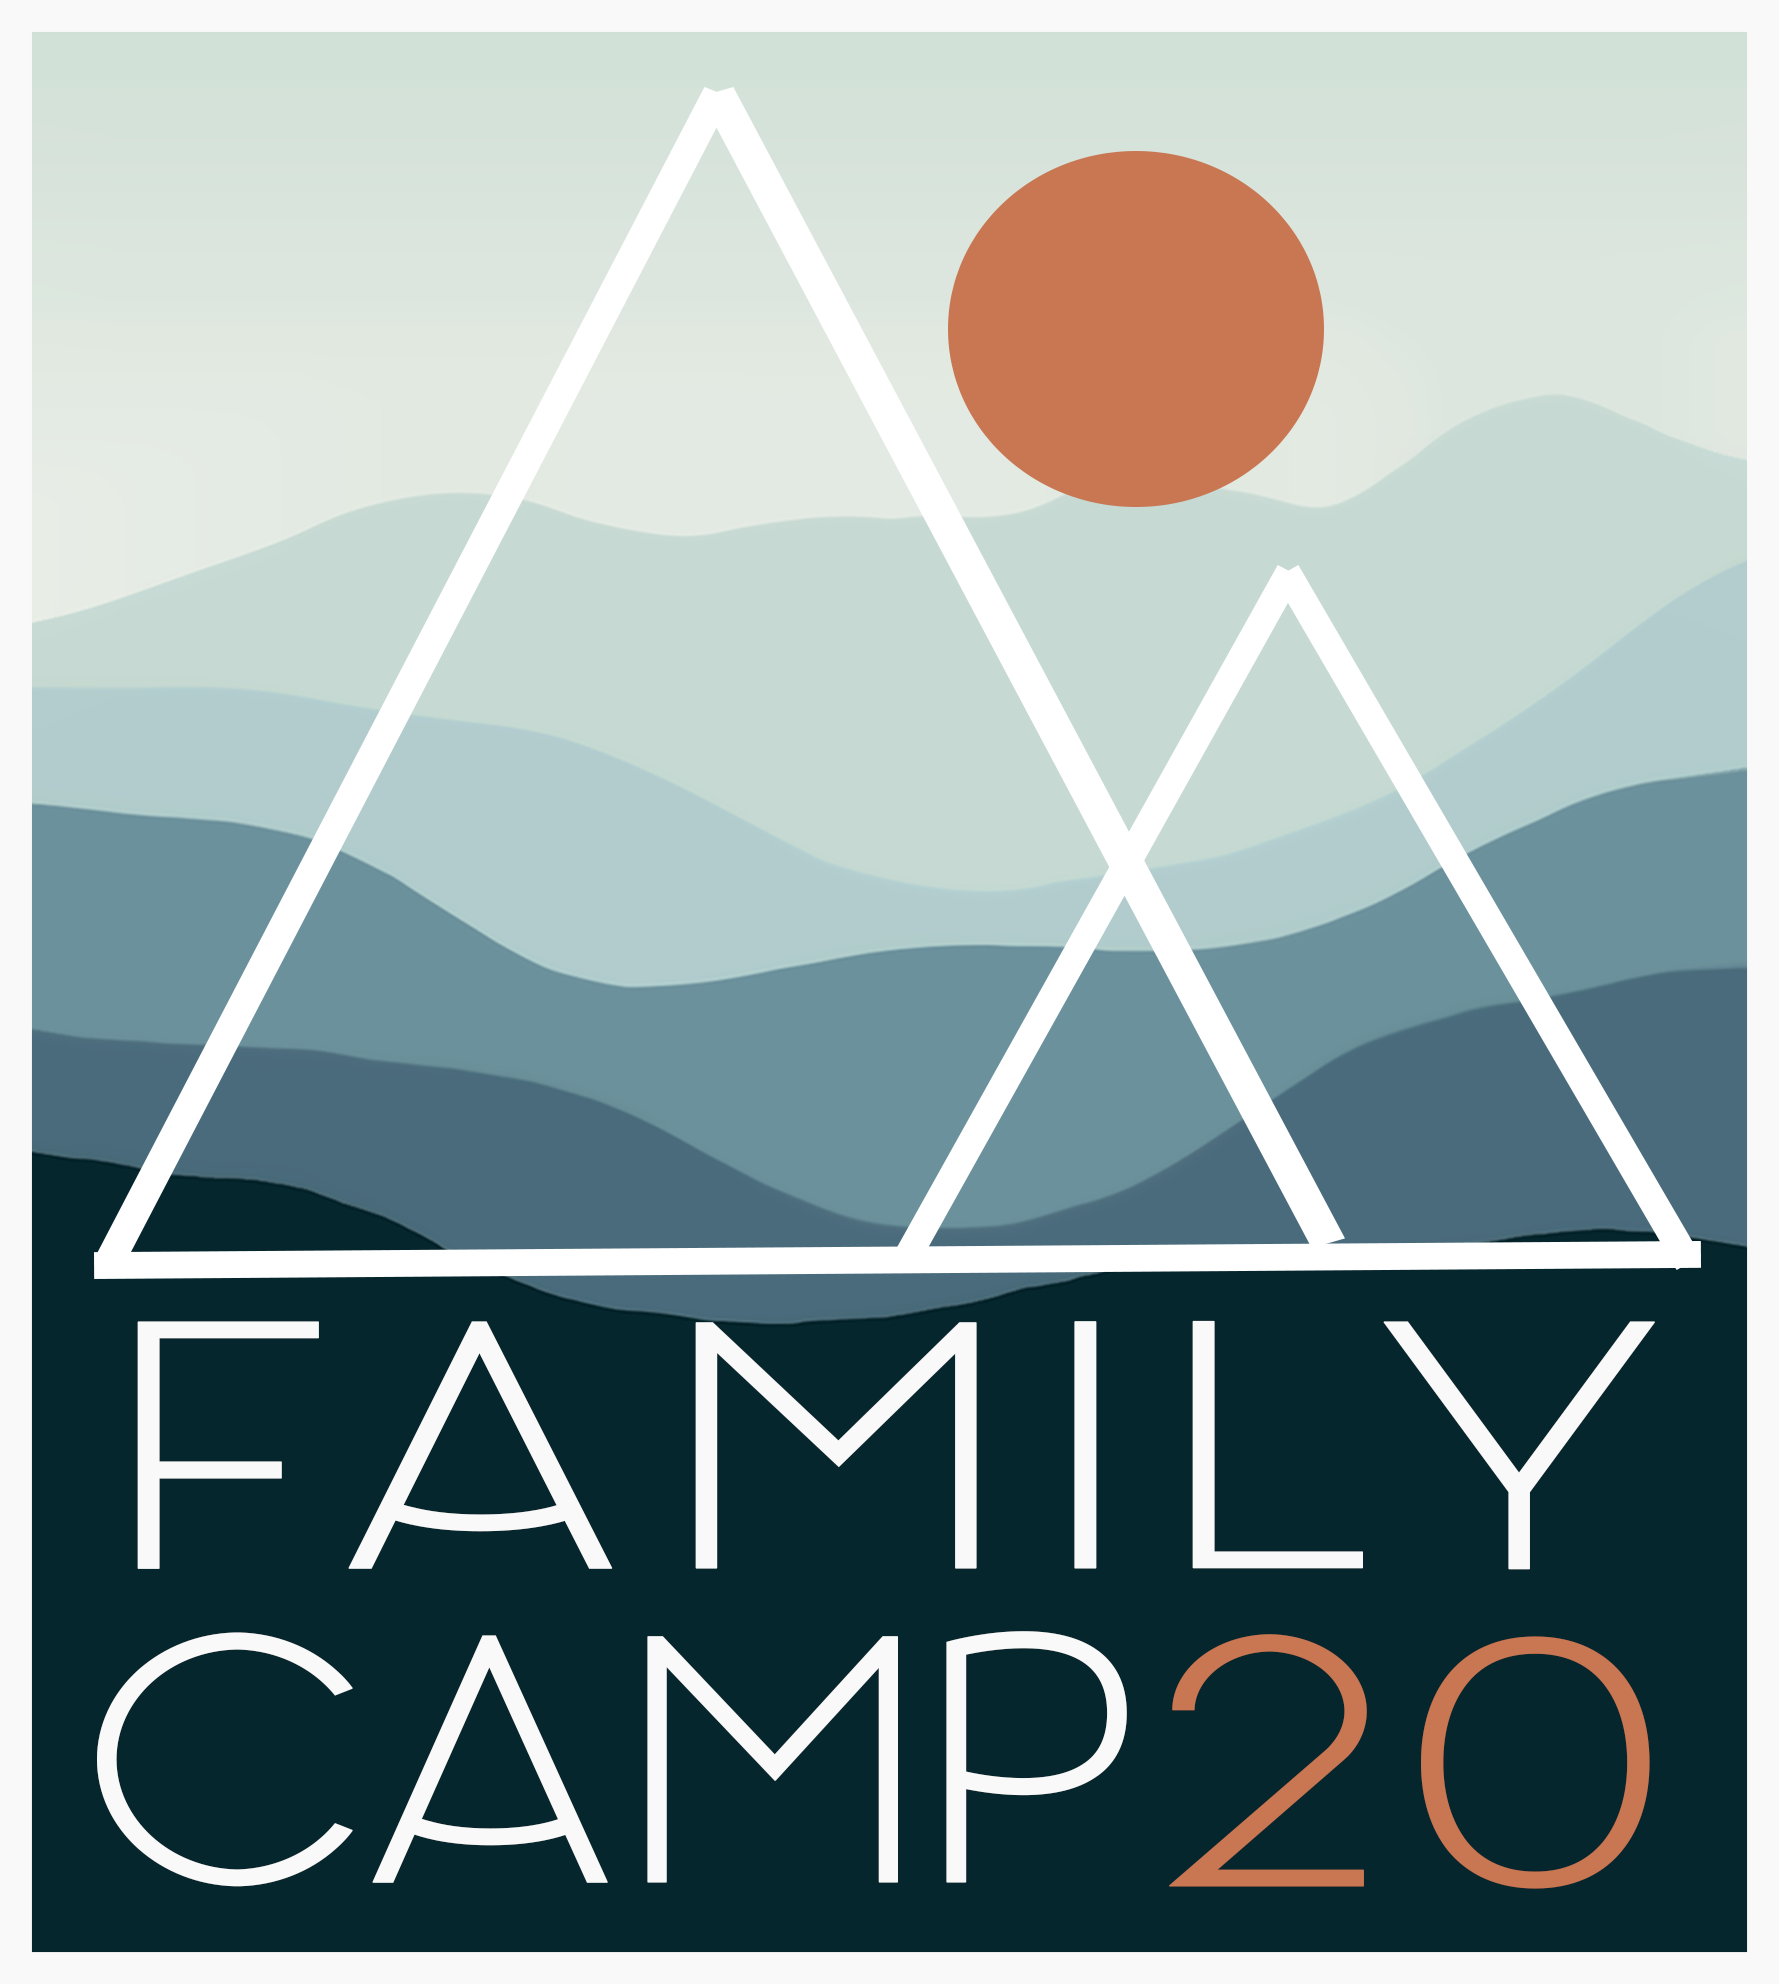 family camp 20